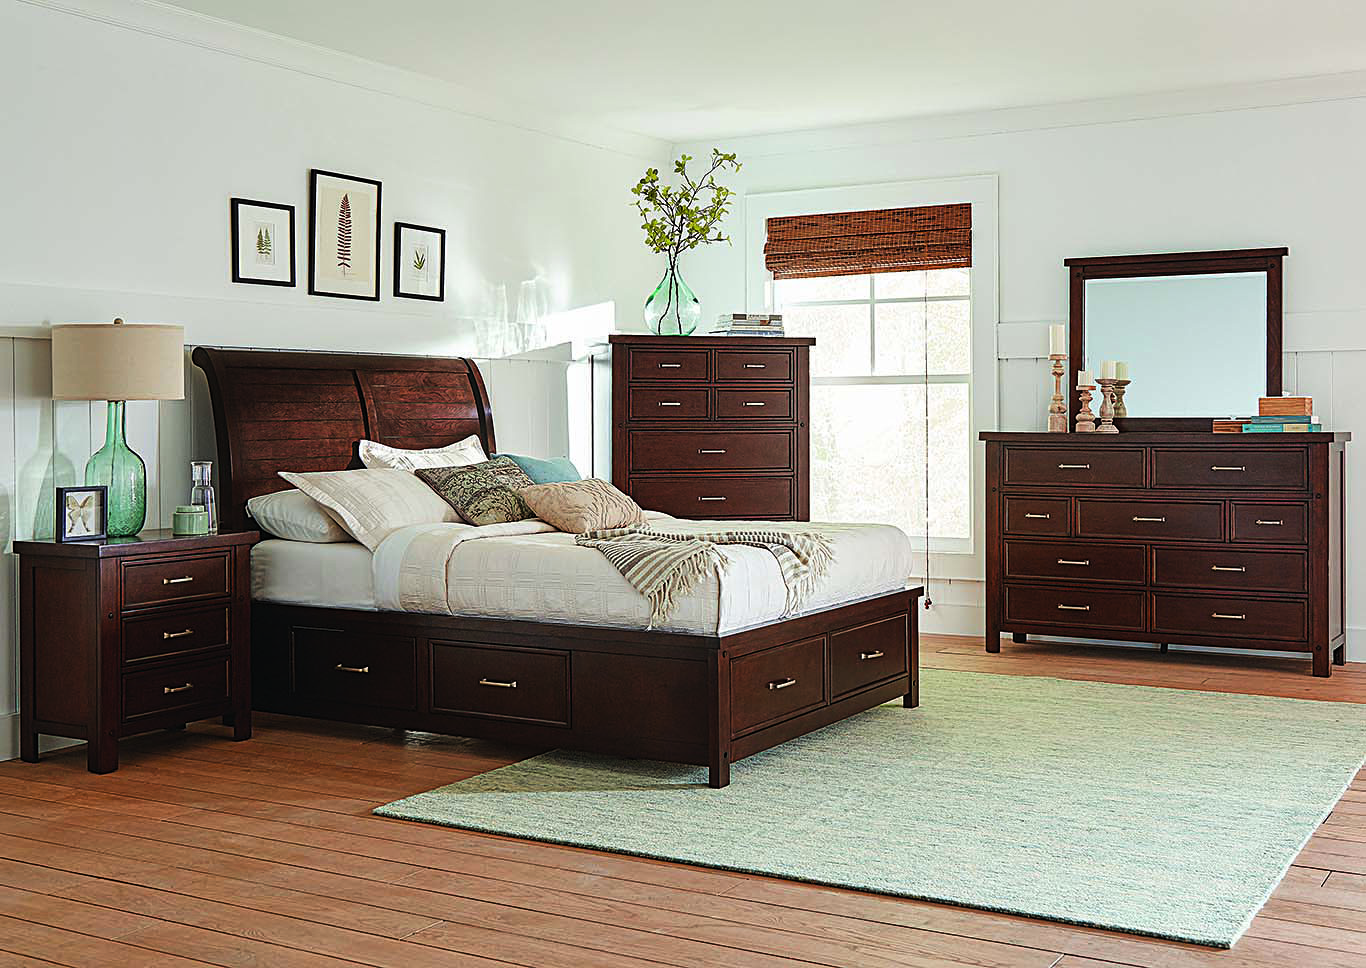 Barstow Pinot Noir California King Storage Bed w/Dresser & Mirror,Coaster Furniture